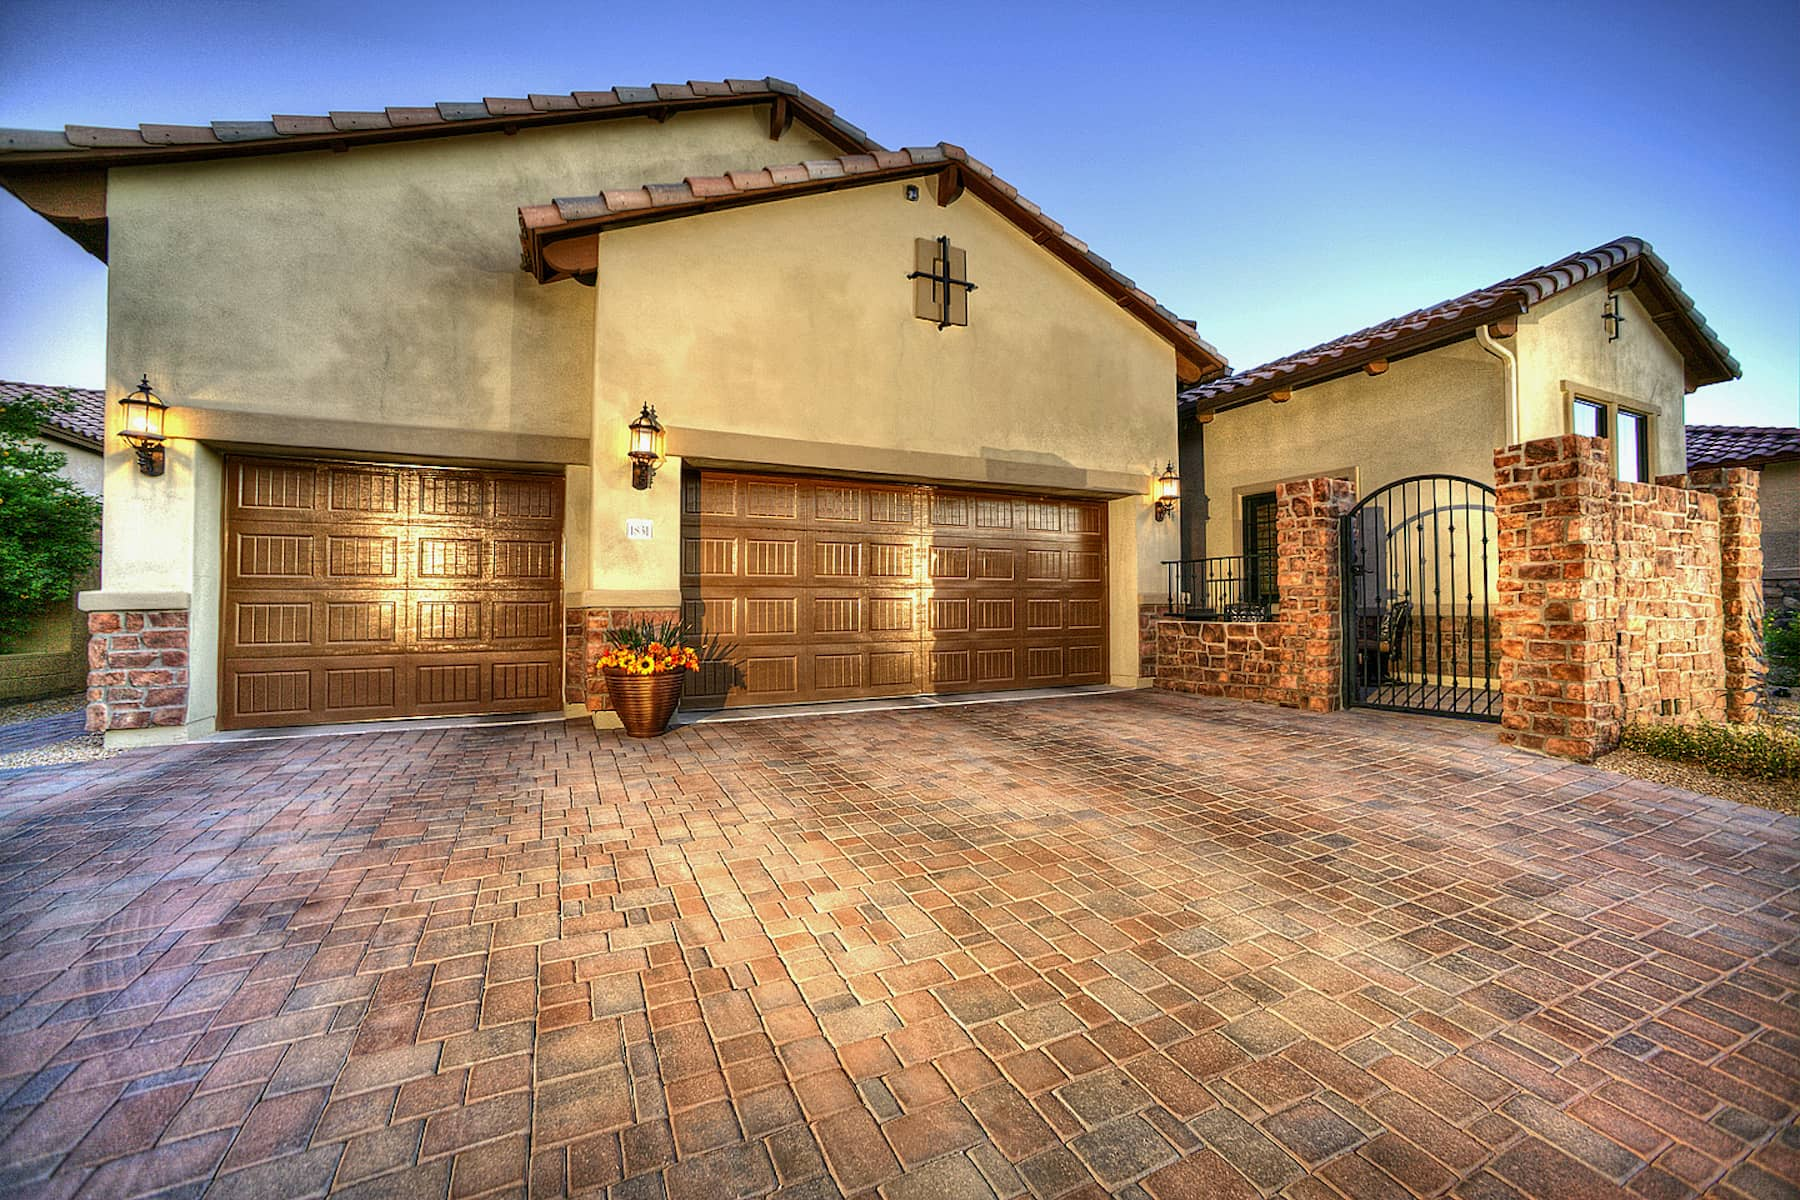 Real Estate Photographer California HDR - Best Photography Jobs for Real Estate - Sunny 16